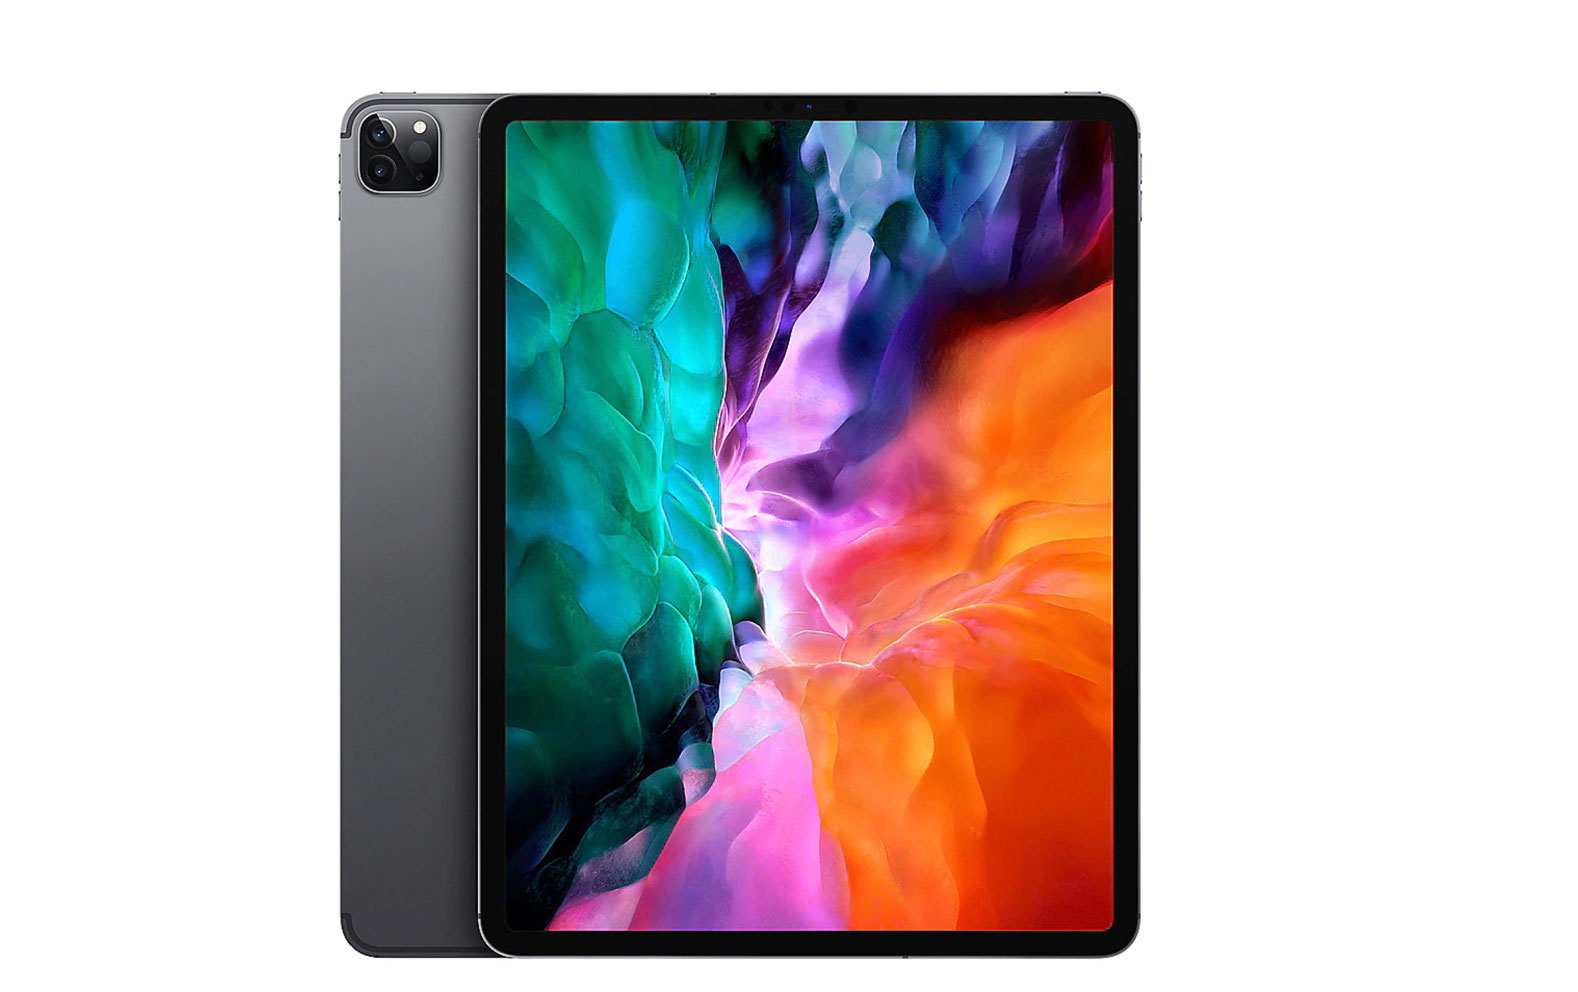 ipad_pro-spacegrau2_leasing06WGmeYS95mP2